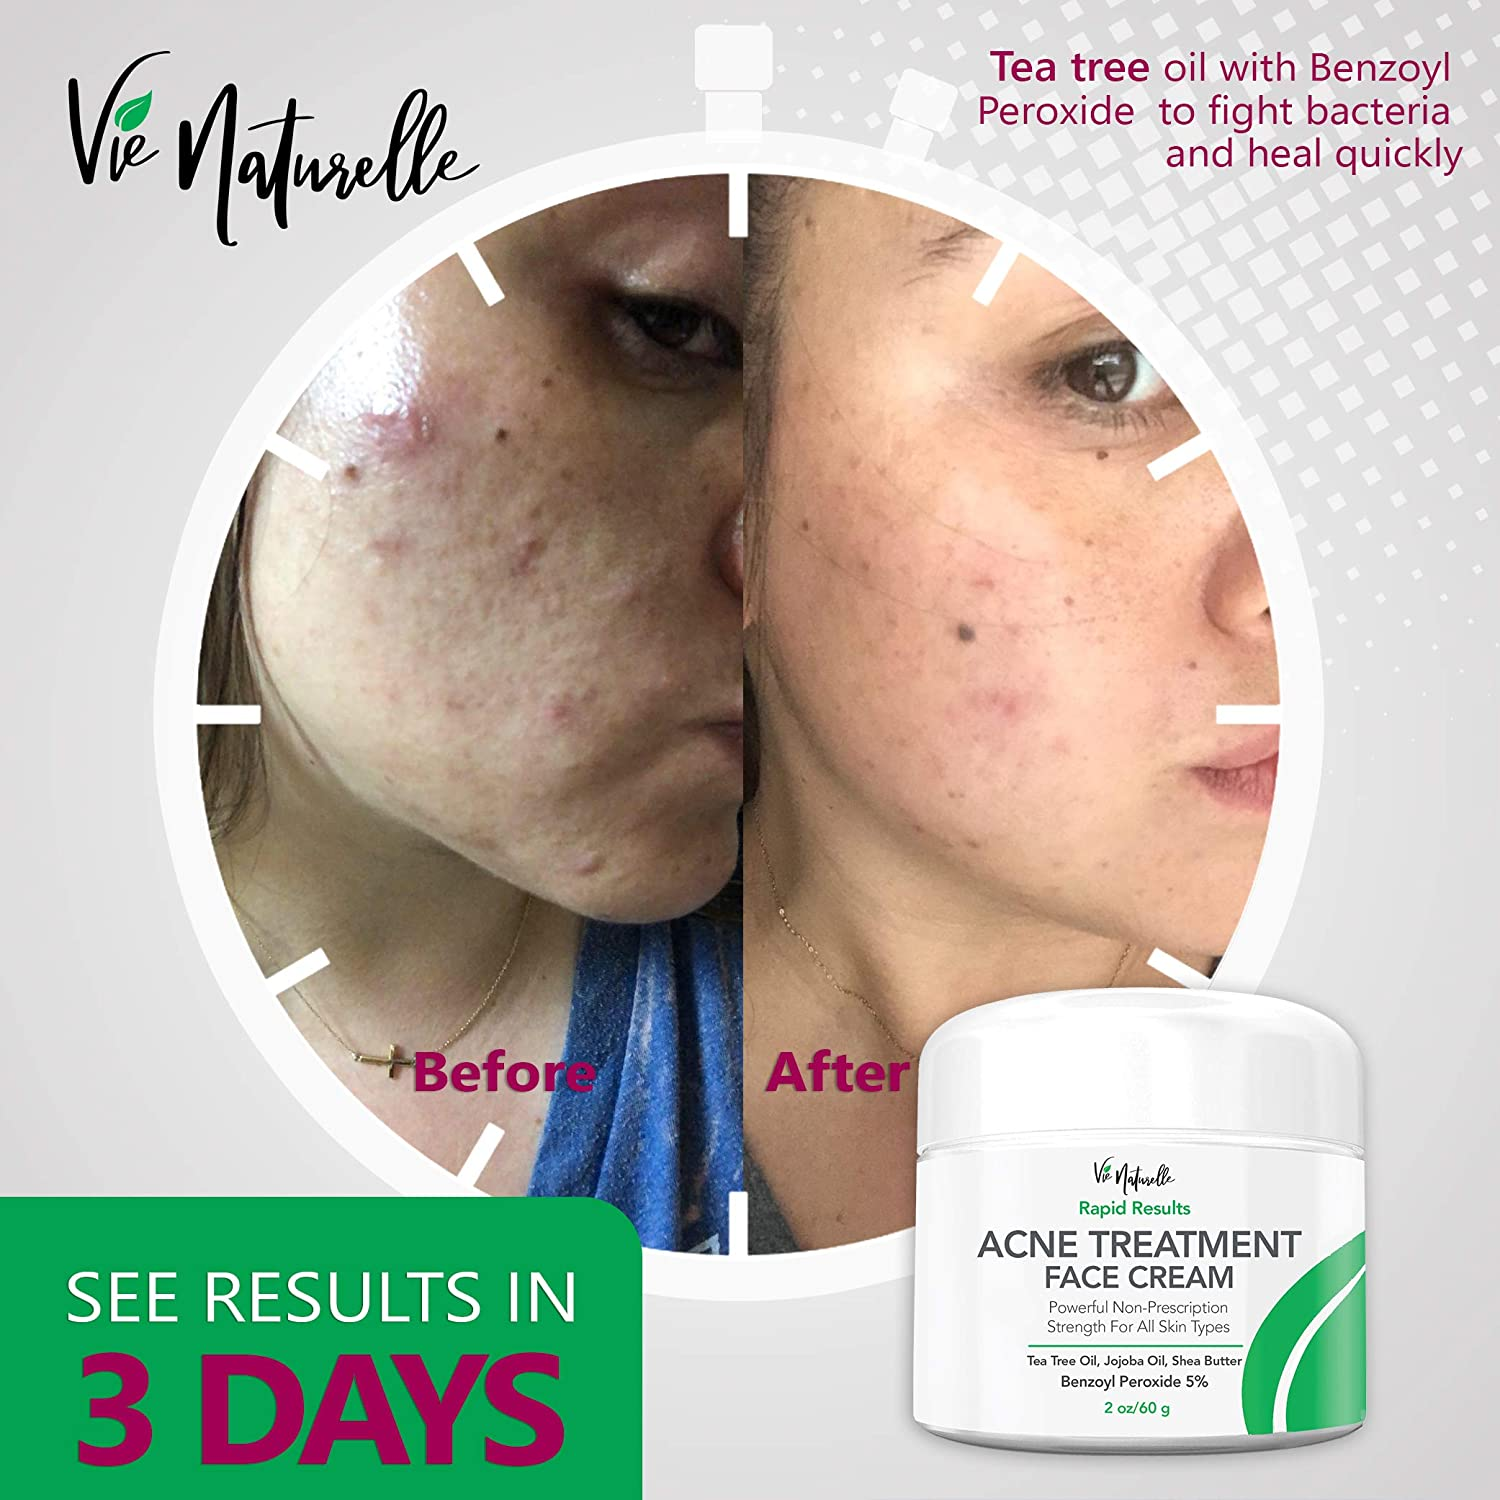 Replace Useless Acne Cream With Vie Naturelle Cream